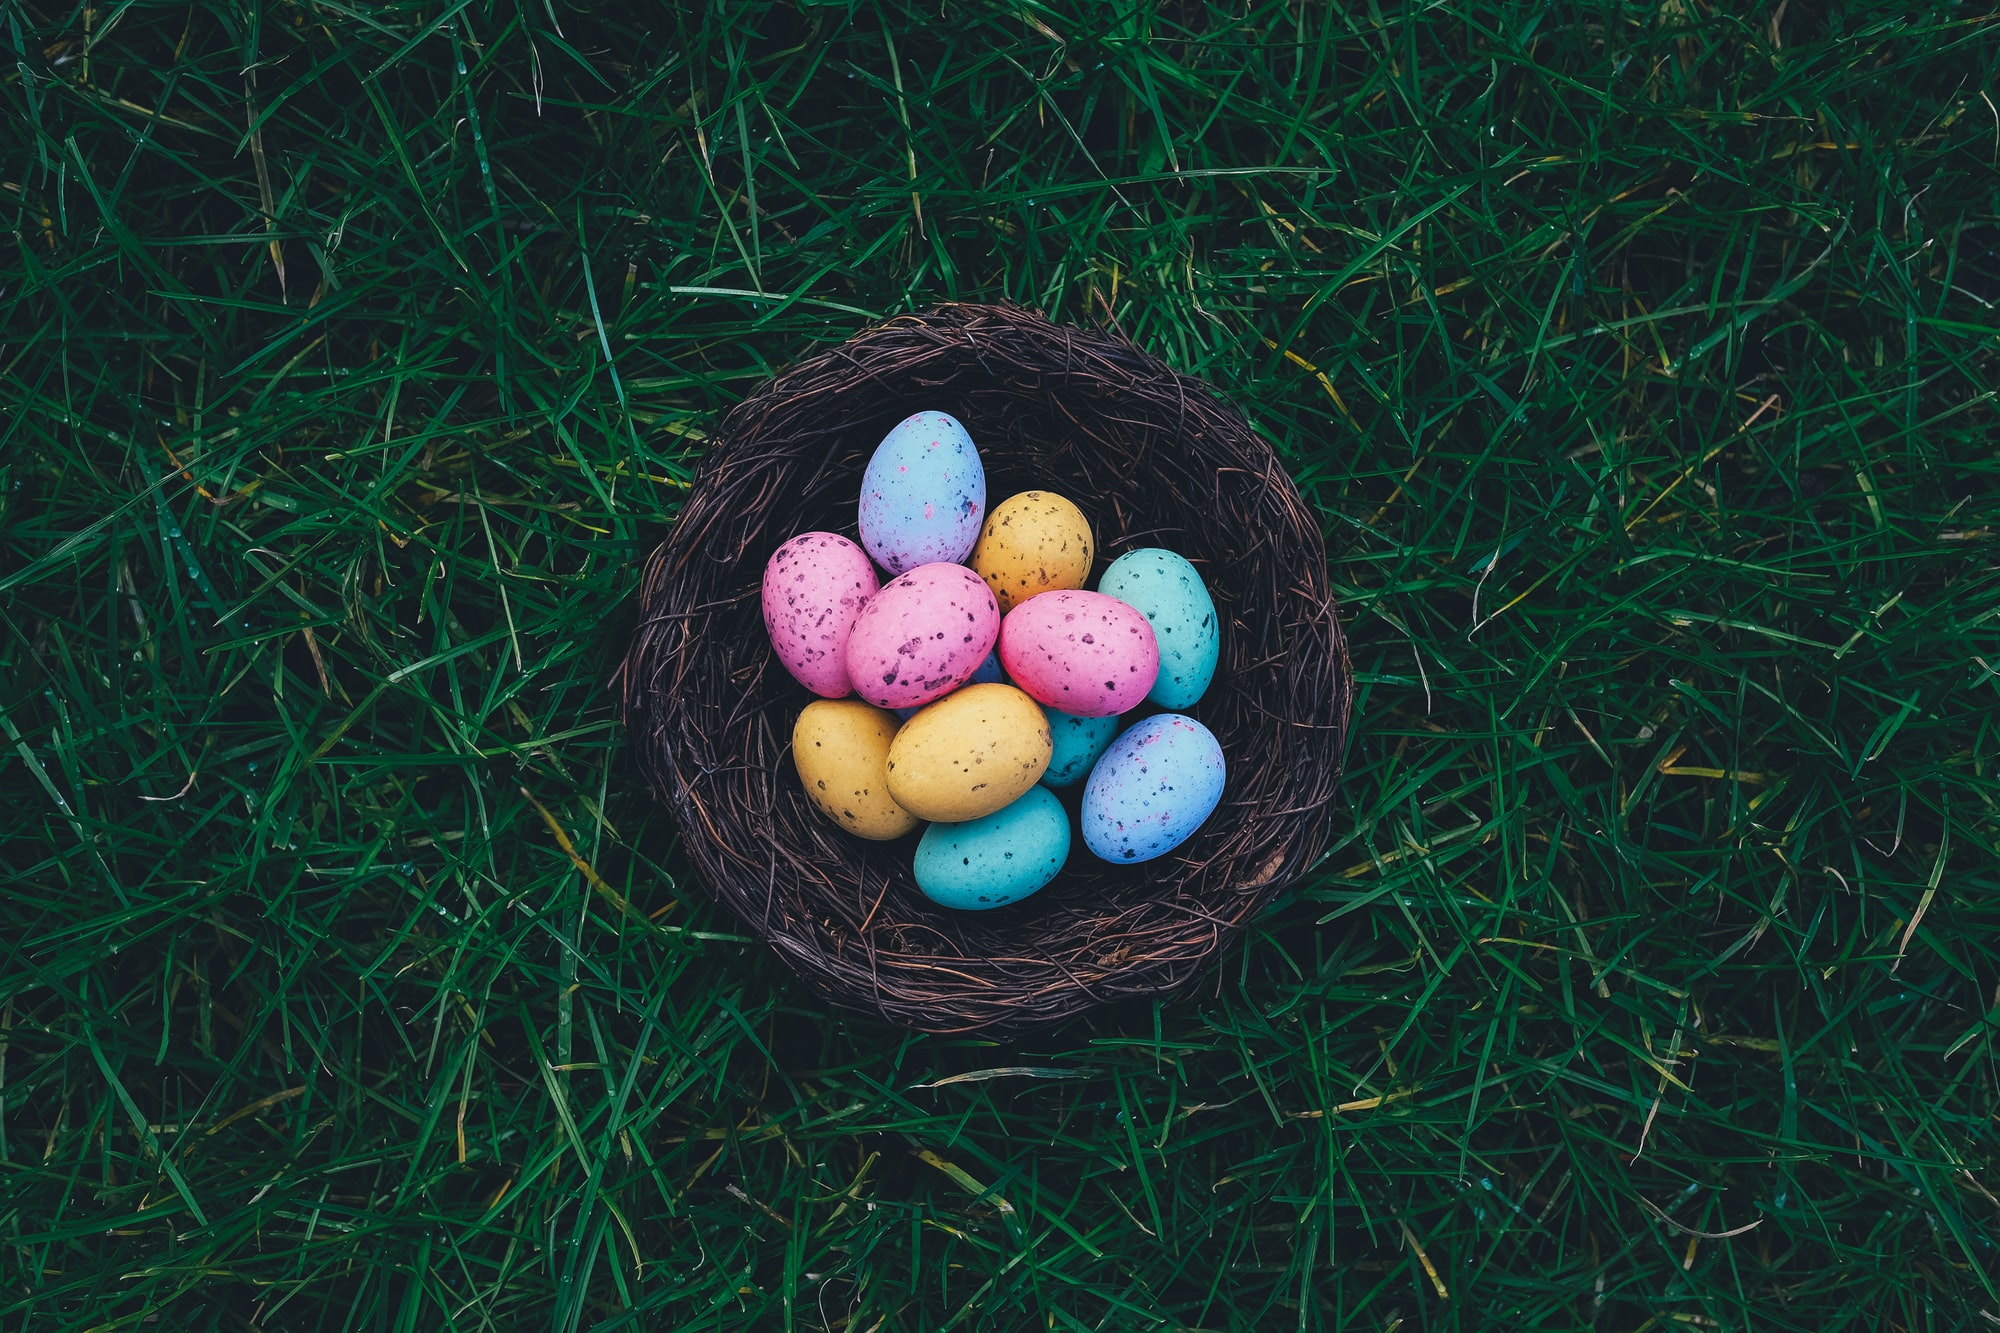 Easter celebrated in new ways this year